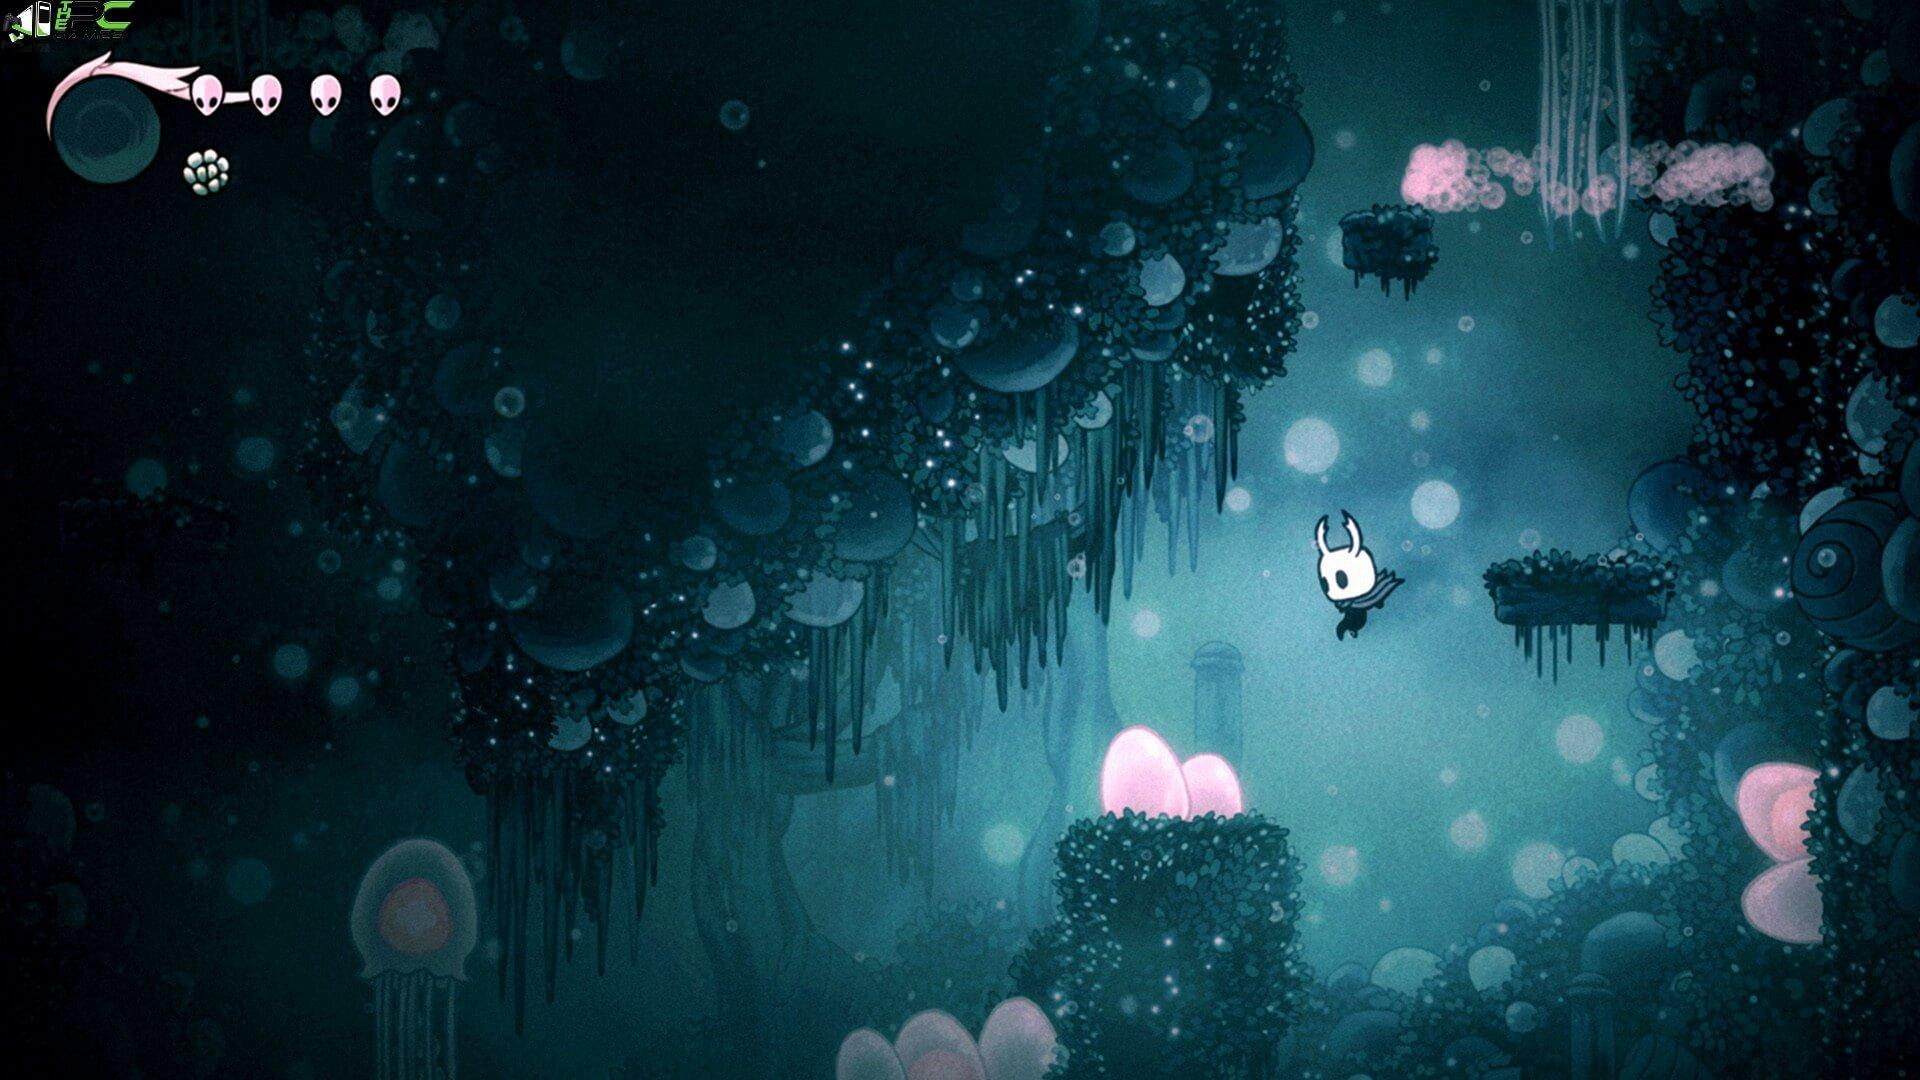 Hollow Knight Lifeblood Wallpapers - Wallpaper Cave